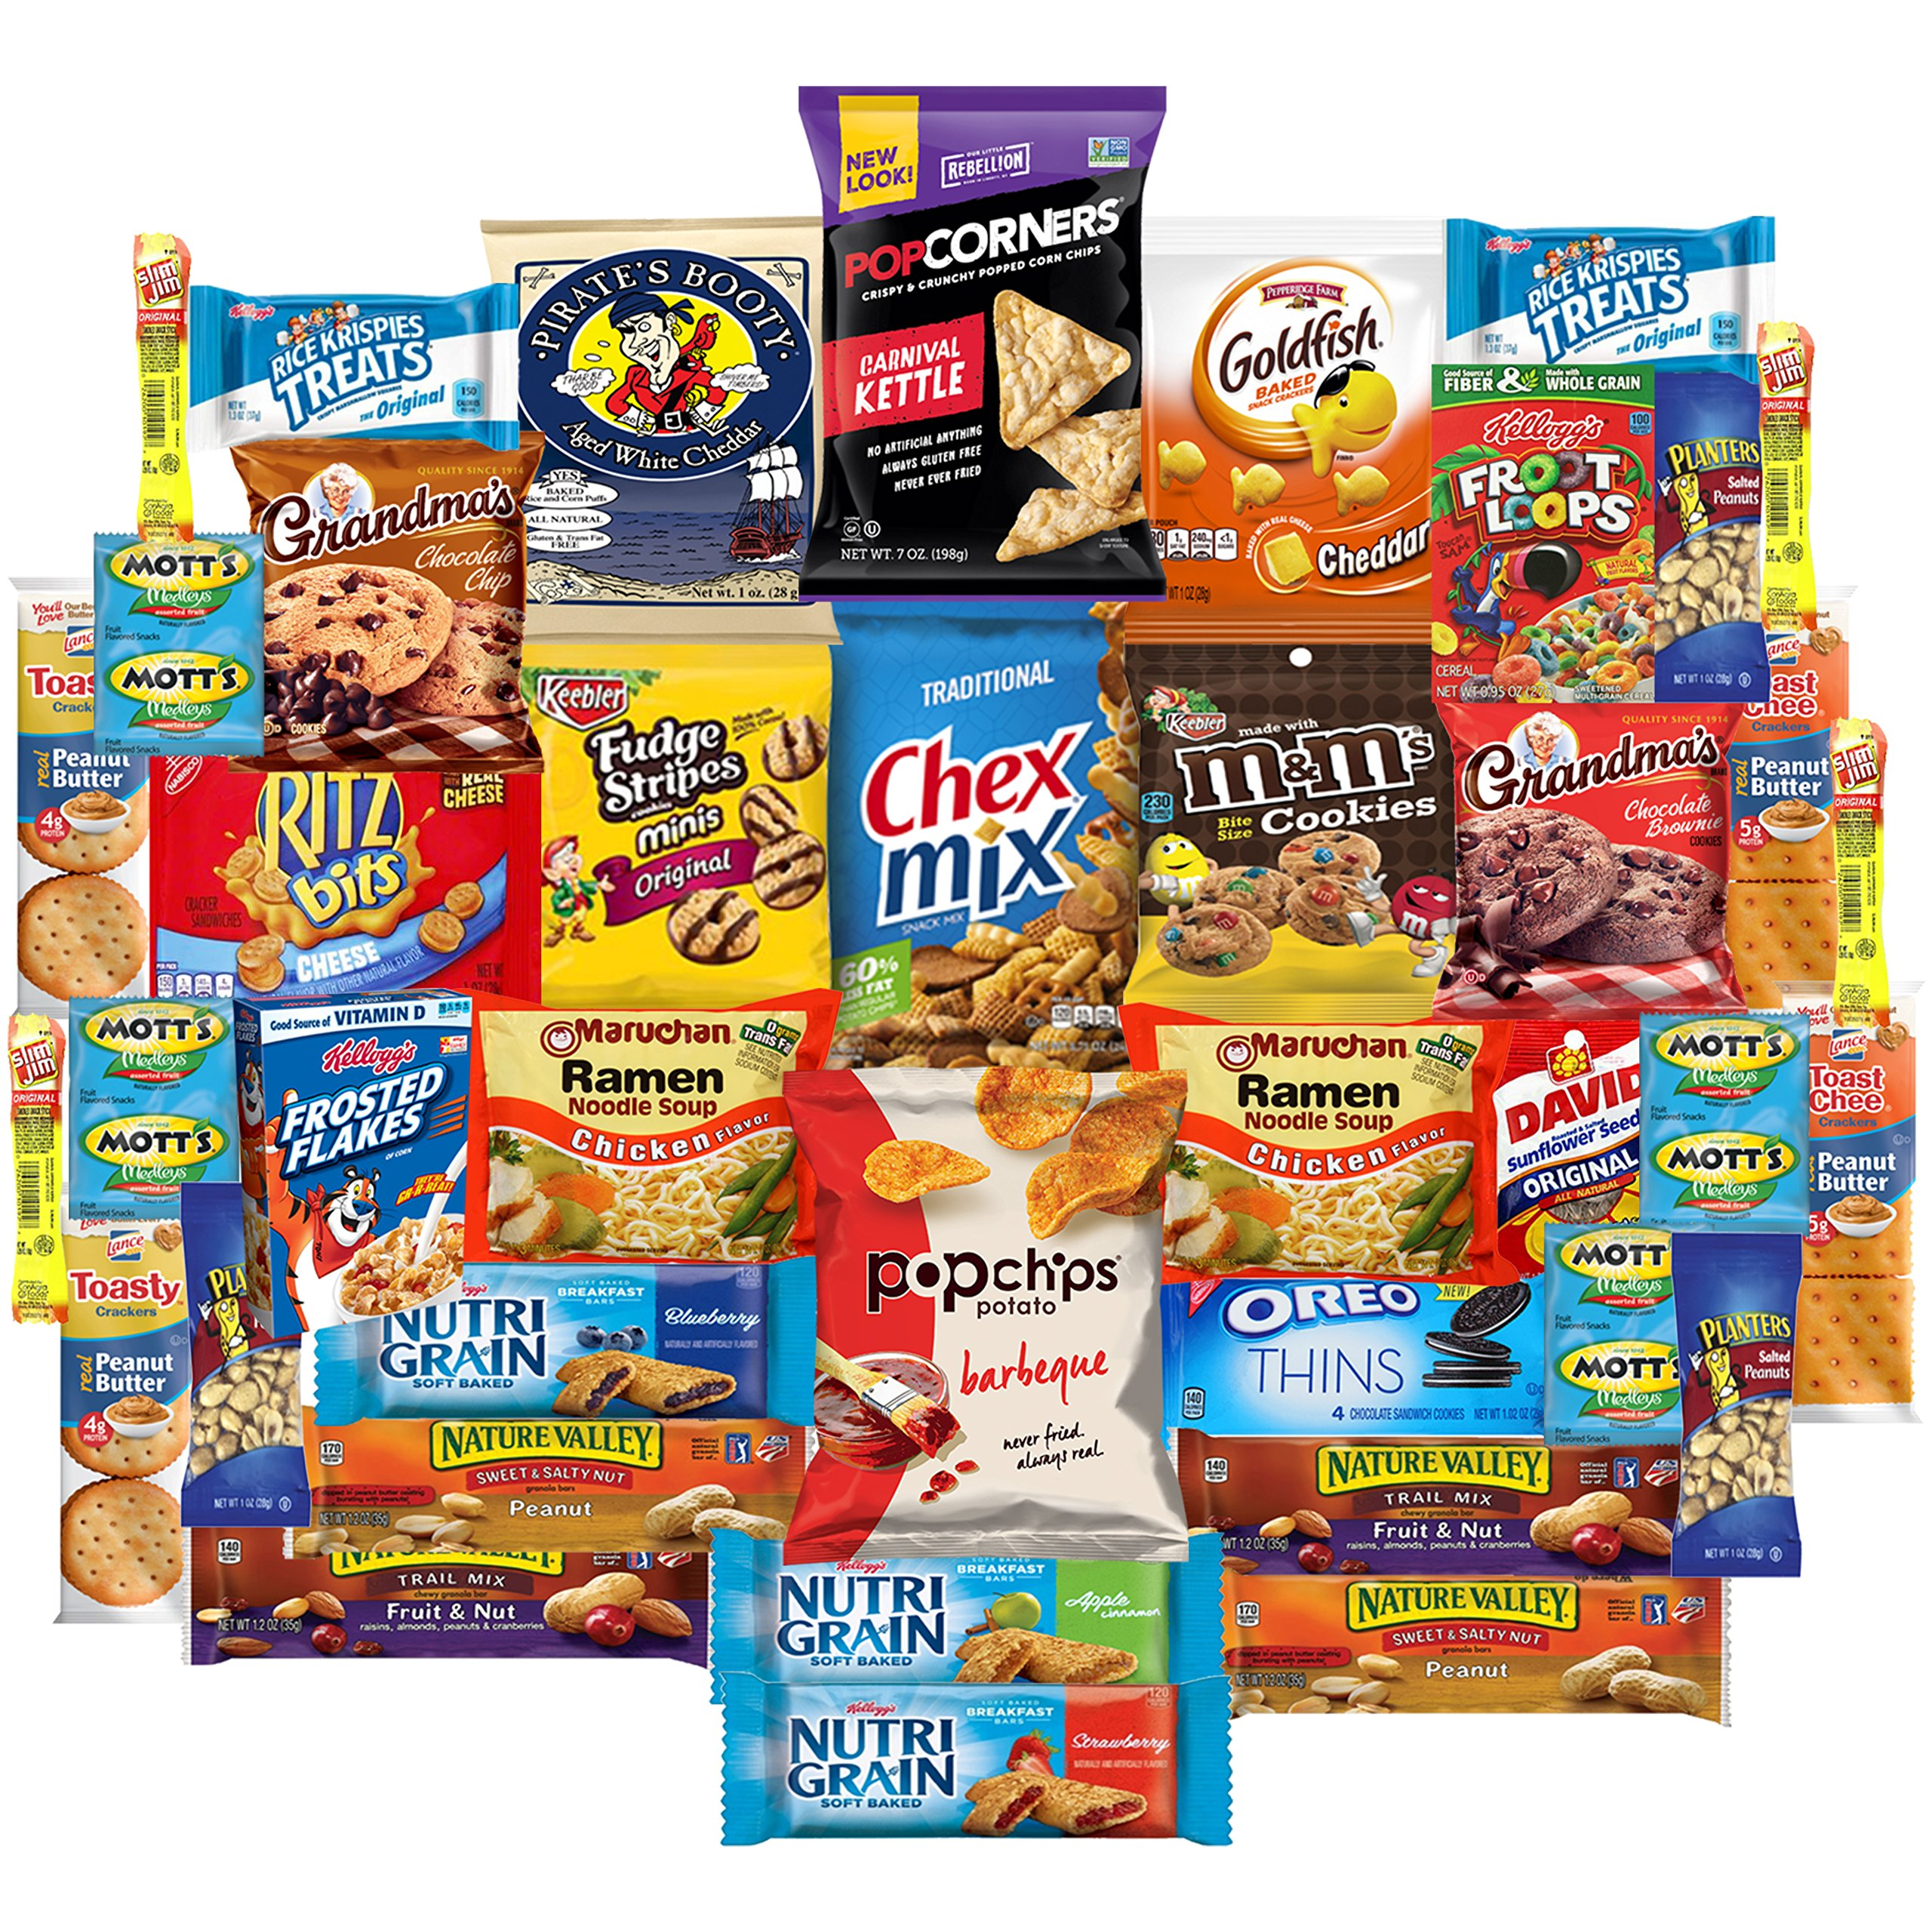 Ultimate Care Package Snacks Cookies Bars Chips Crackers Assortment For College, Army, Hospital, Student (40 Count)